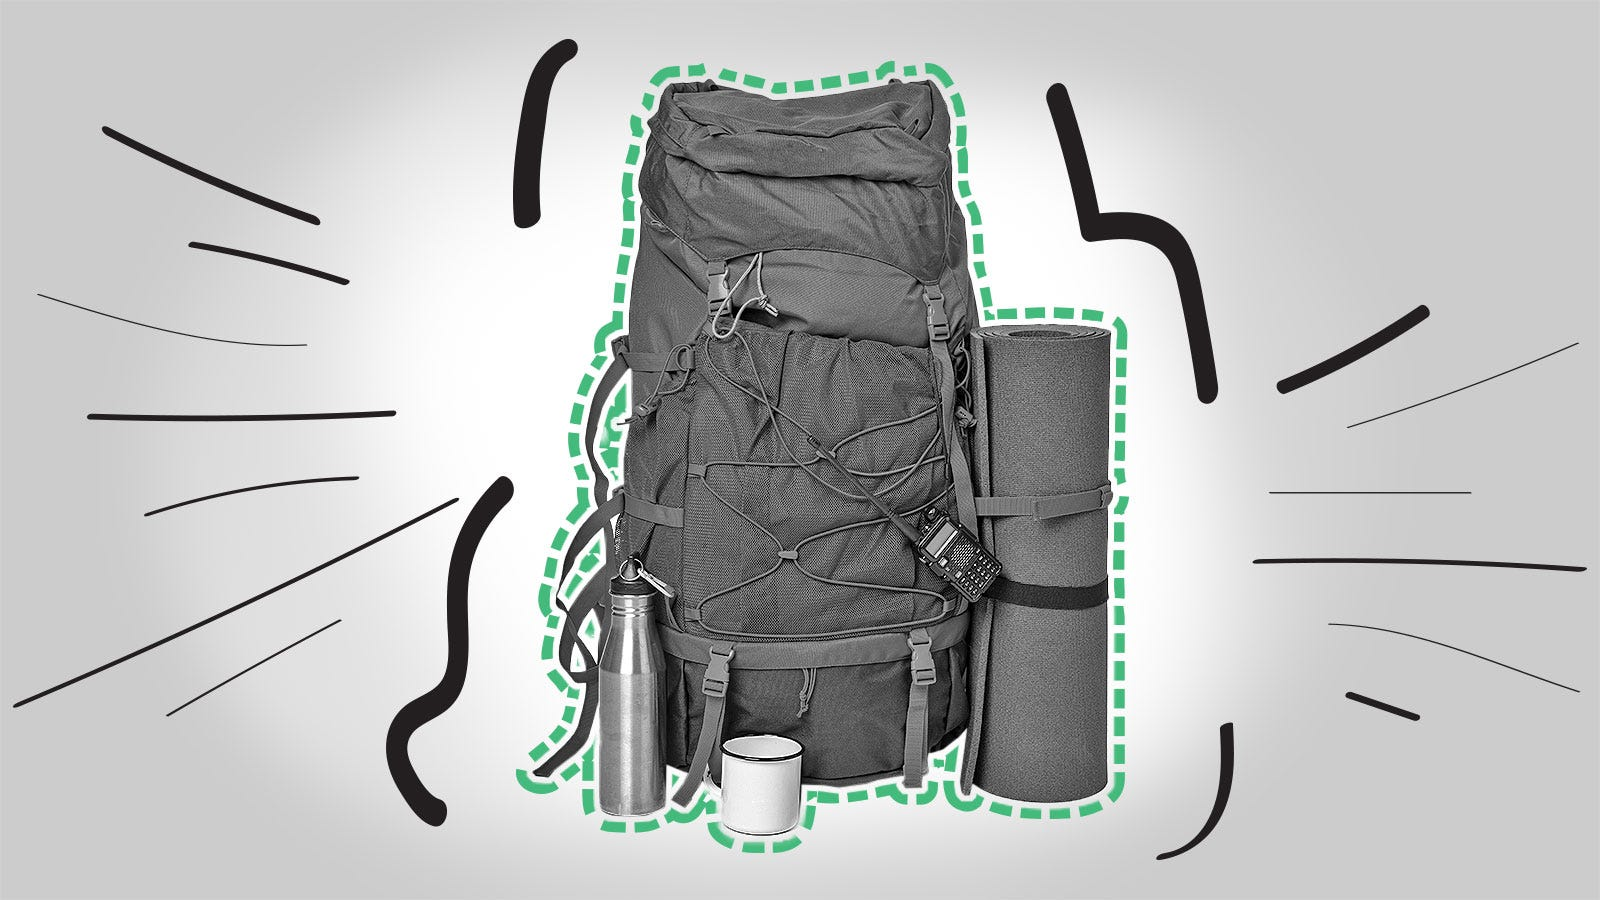 Last summer, with people eager for a vacation but nervous about staying in hotels or resorts, stocksof tents, hammocks, coolers and other gear were limited.